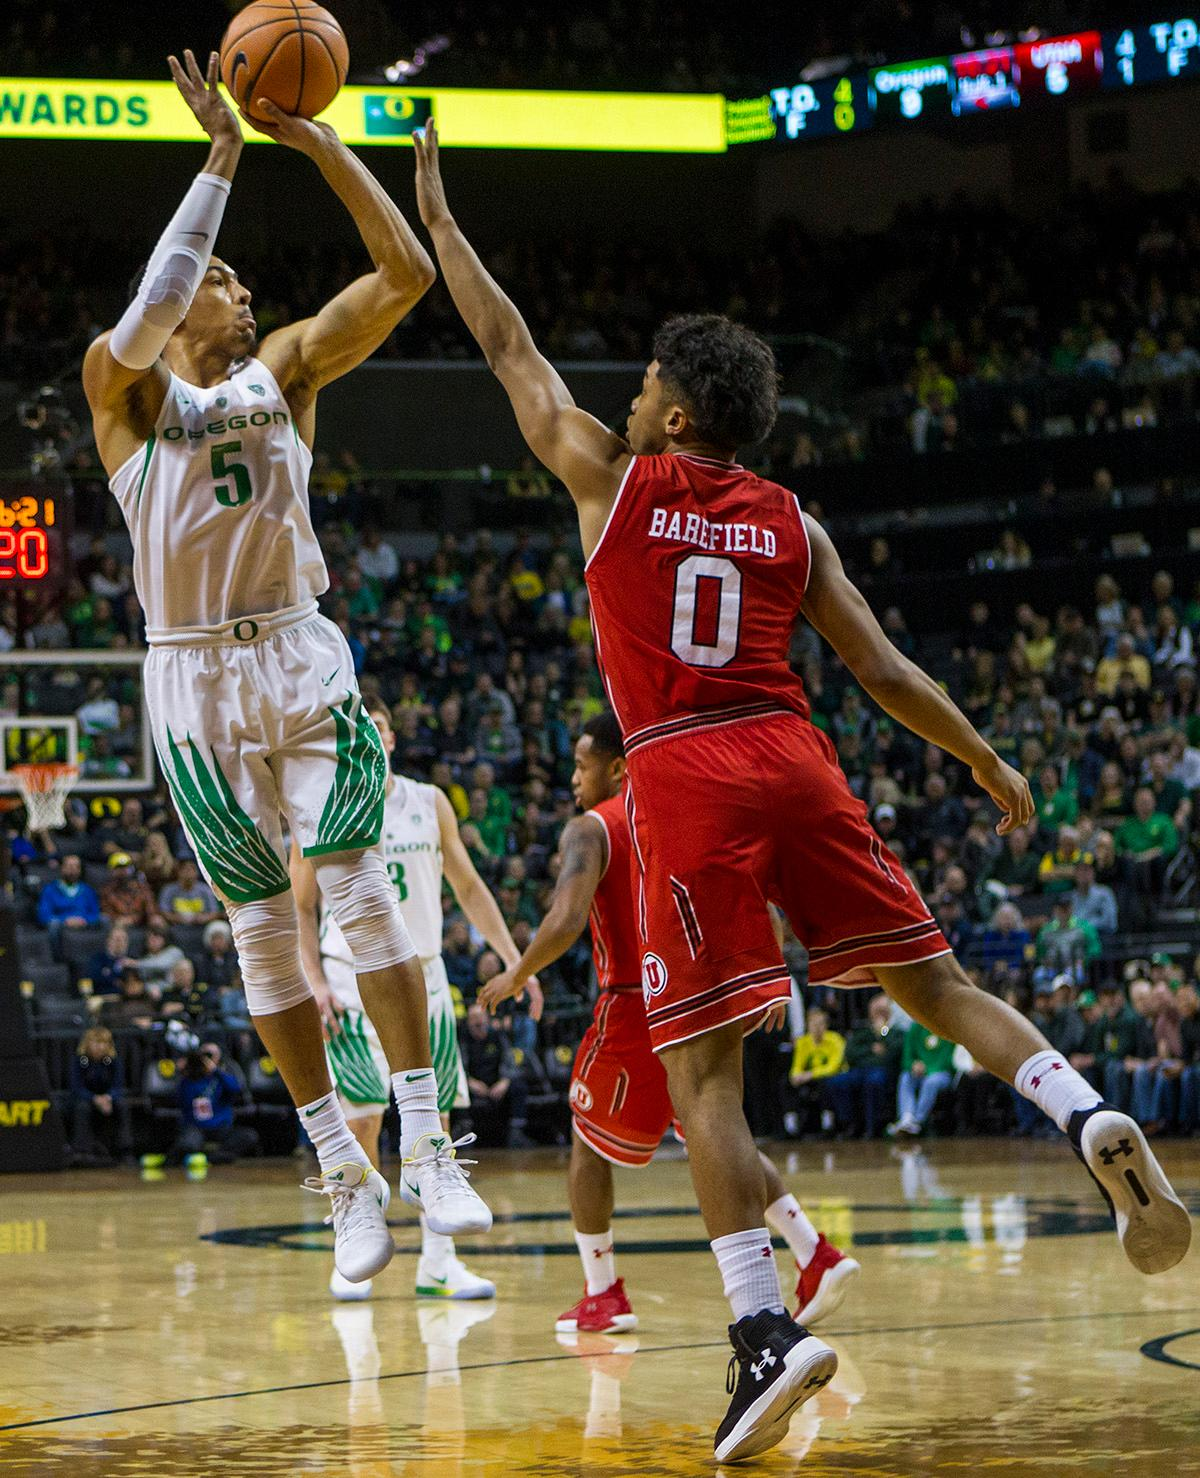 Oregon Ducks Elijah Brown (#5) shoots for the basket. The Utah Utes defeated the Oregon Ducks 66-56 on Friday night at Matthew Knight Arena. This is the first Pac-12 conference game loss at home for the Ducks since January of 2015. This also ended the five home game winning streak for the Ducks against the Utah Utes. Photo by Rhianna Gelhart, Oregon News Lab